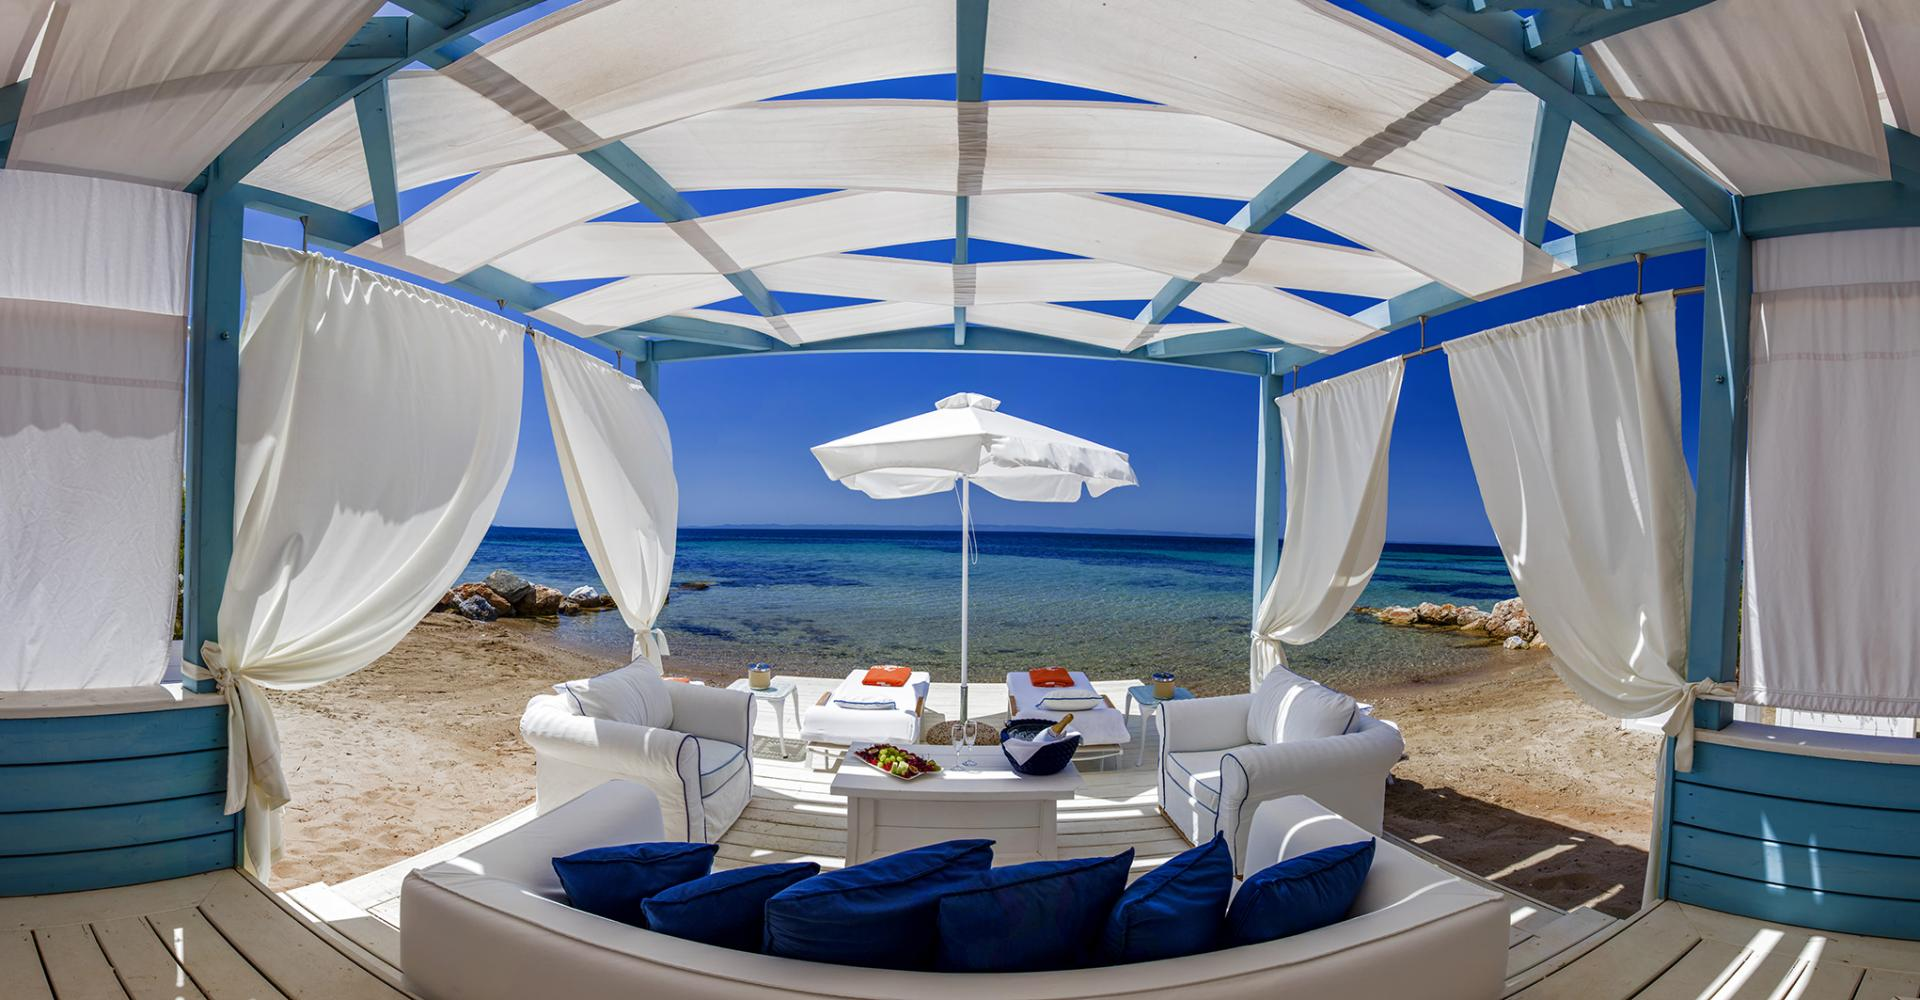 danai-beach-private-cabana